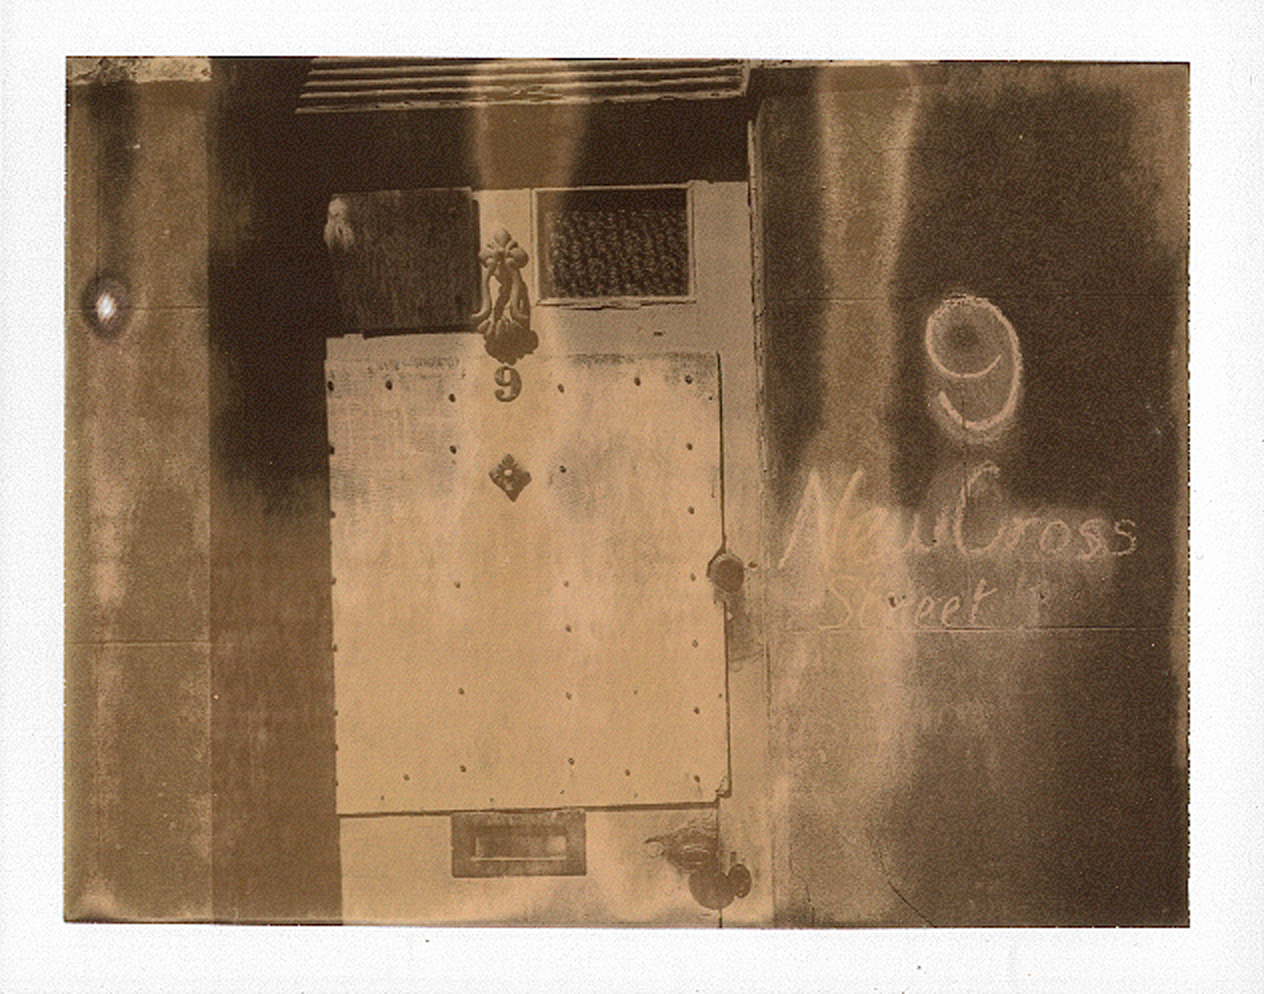 Polaroid 250 camera, Chocolate type100 print, Mike Tedder